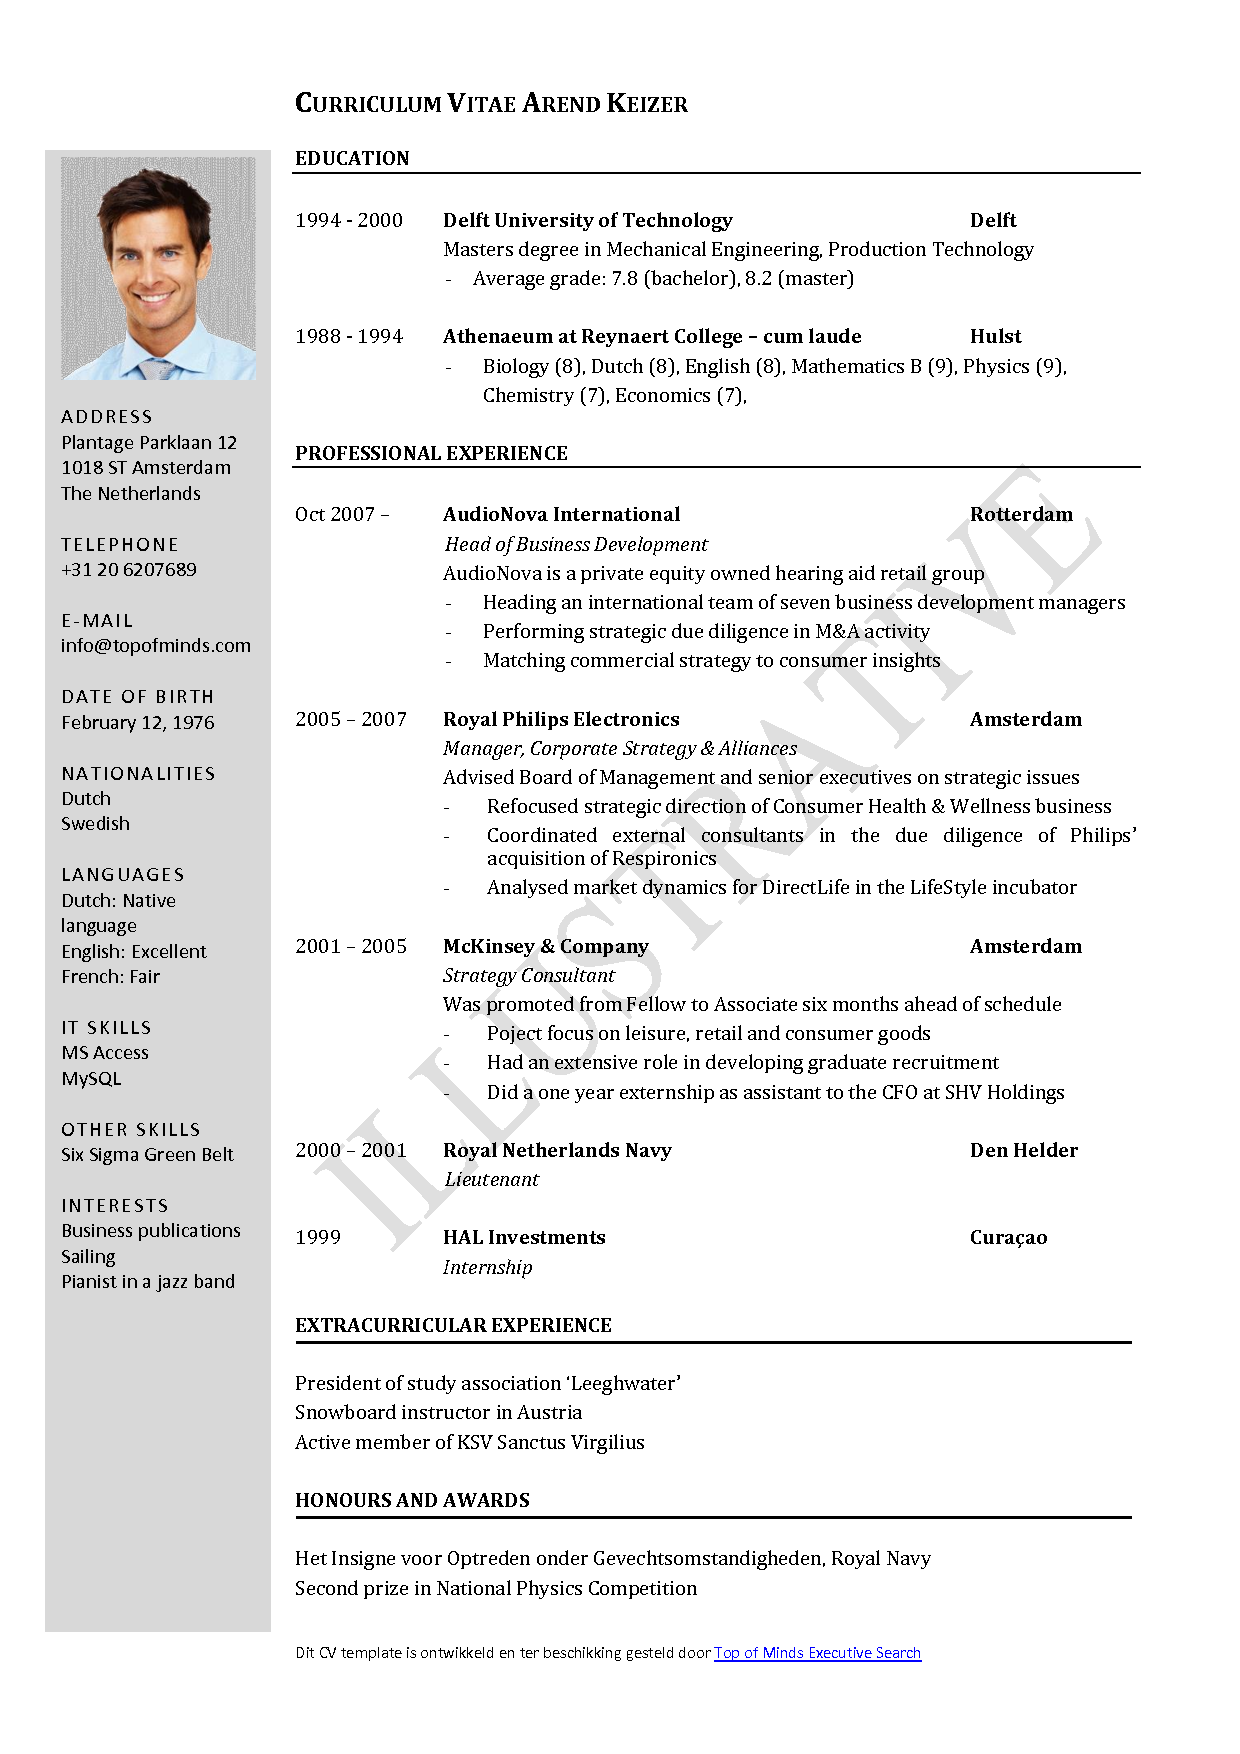 Curriculum Vitae Form Grude Interpretomics Co